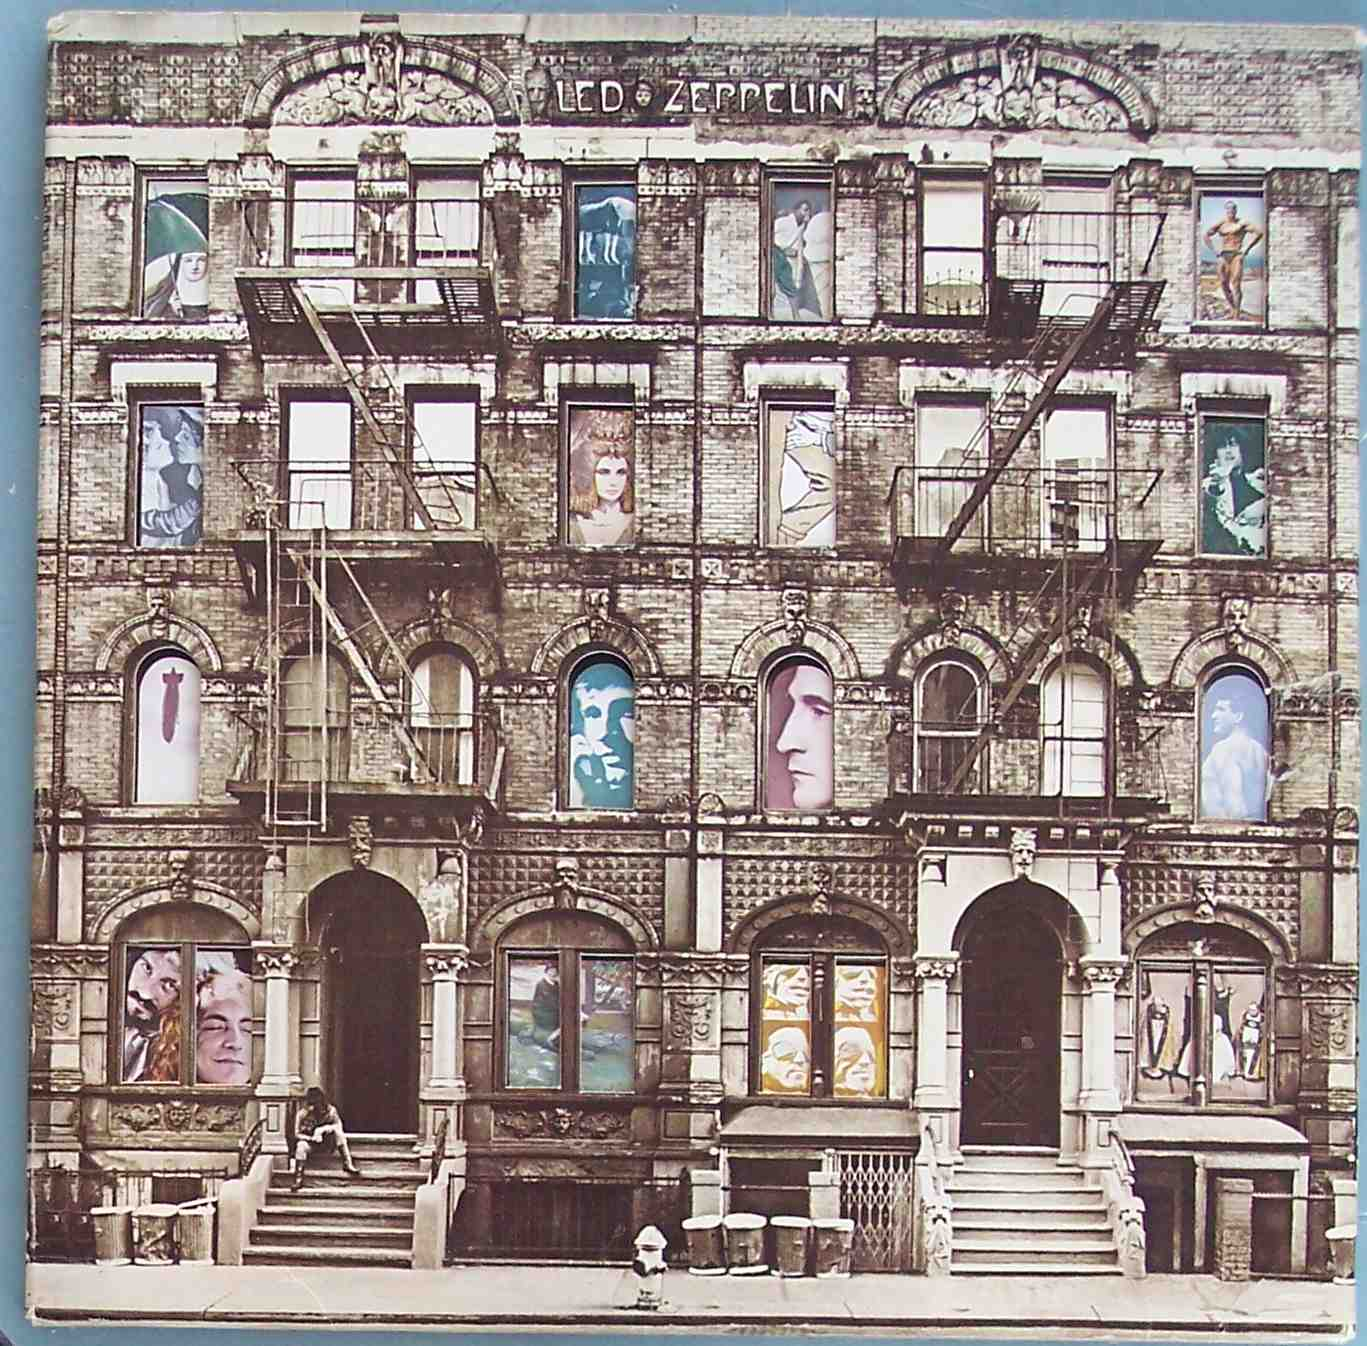 Oldie of The Week: 'Ten Years Gone', Led Zeppelin (1975)